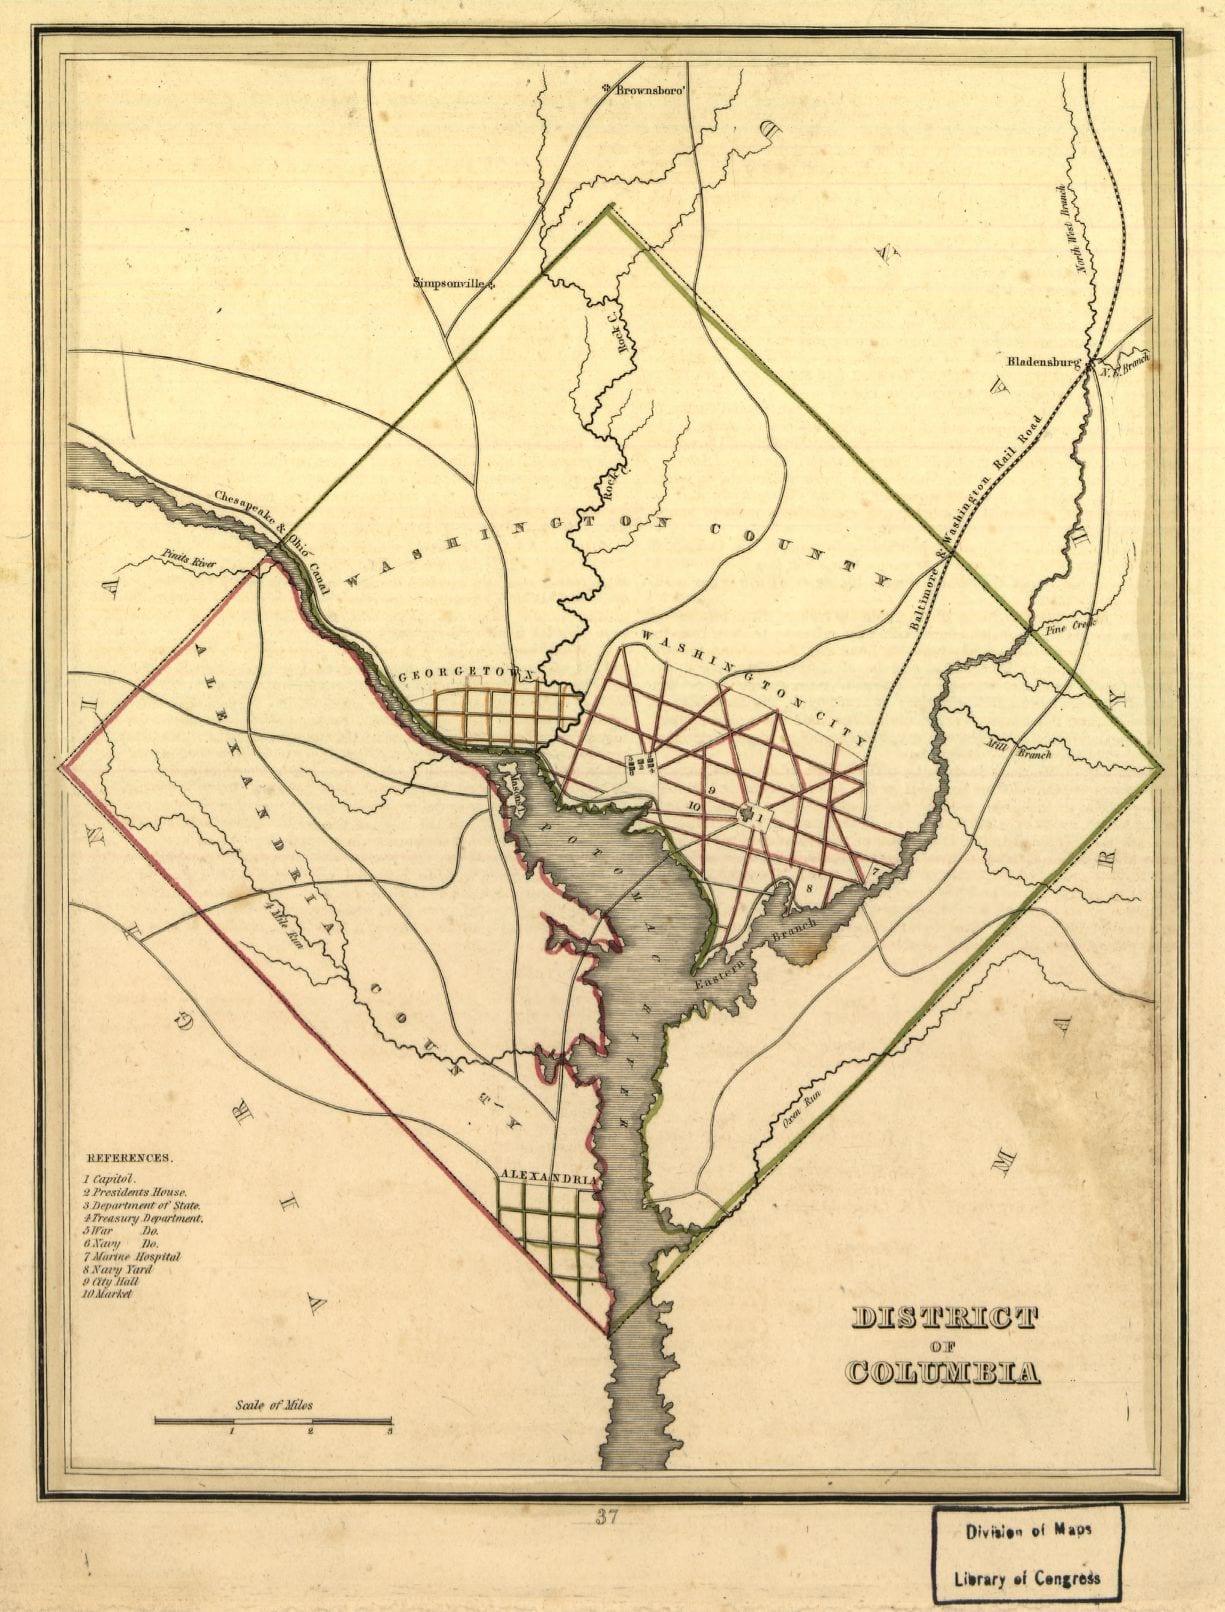 1835 map of Washington